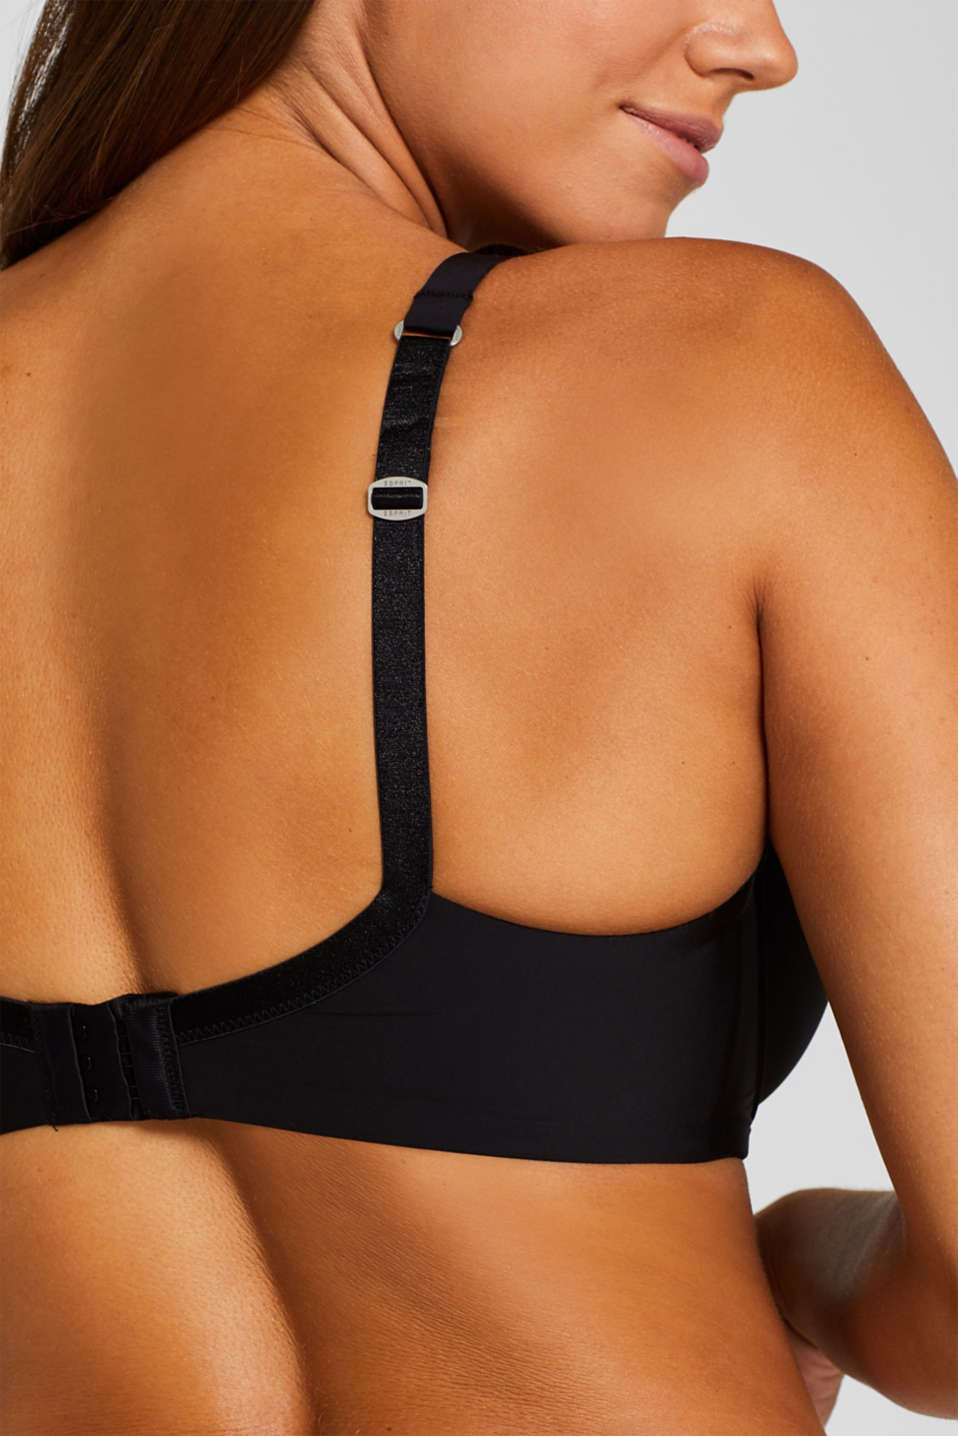 Padded, underwire bra for large cup sizes, BLACK, detail image number 3